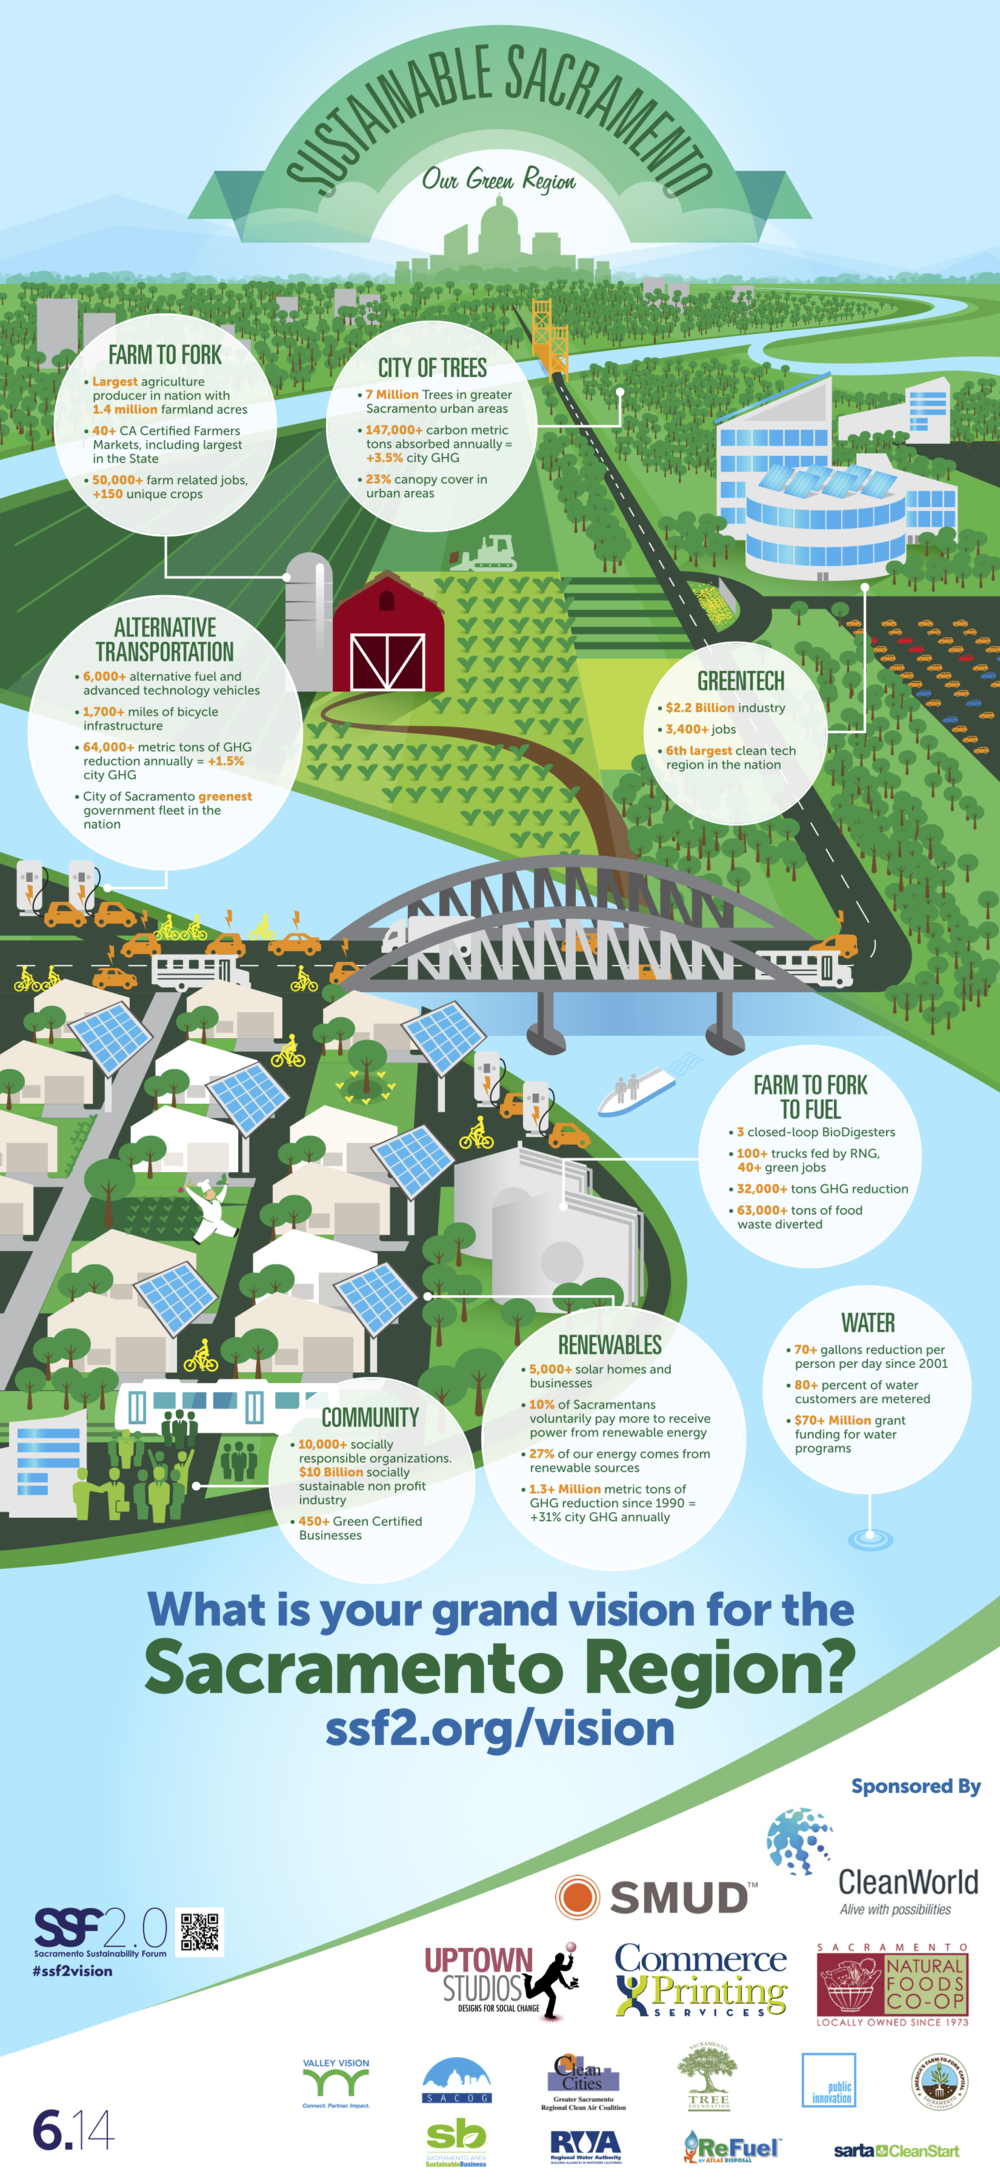 Sustainable Sacramento Shared Vision Infographic